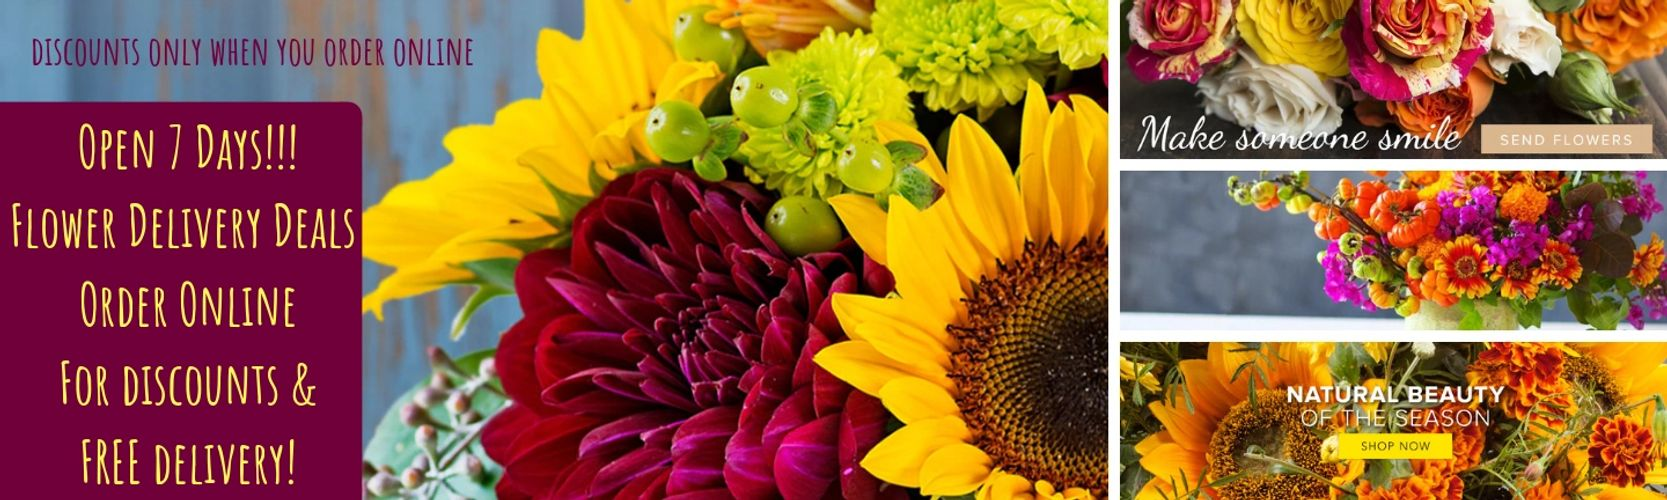 Jills flower shop charlton florist free flower delivery order flowers today for free flower delivery for online orders izmirmasajfo